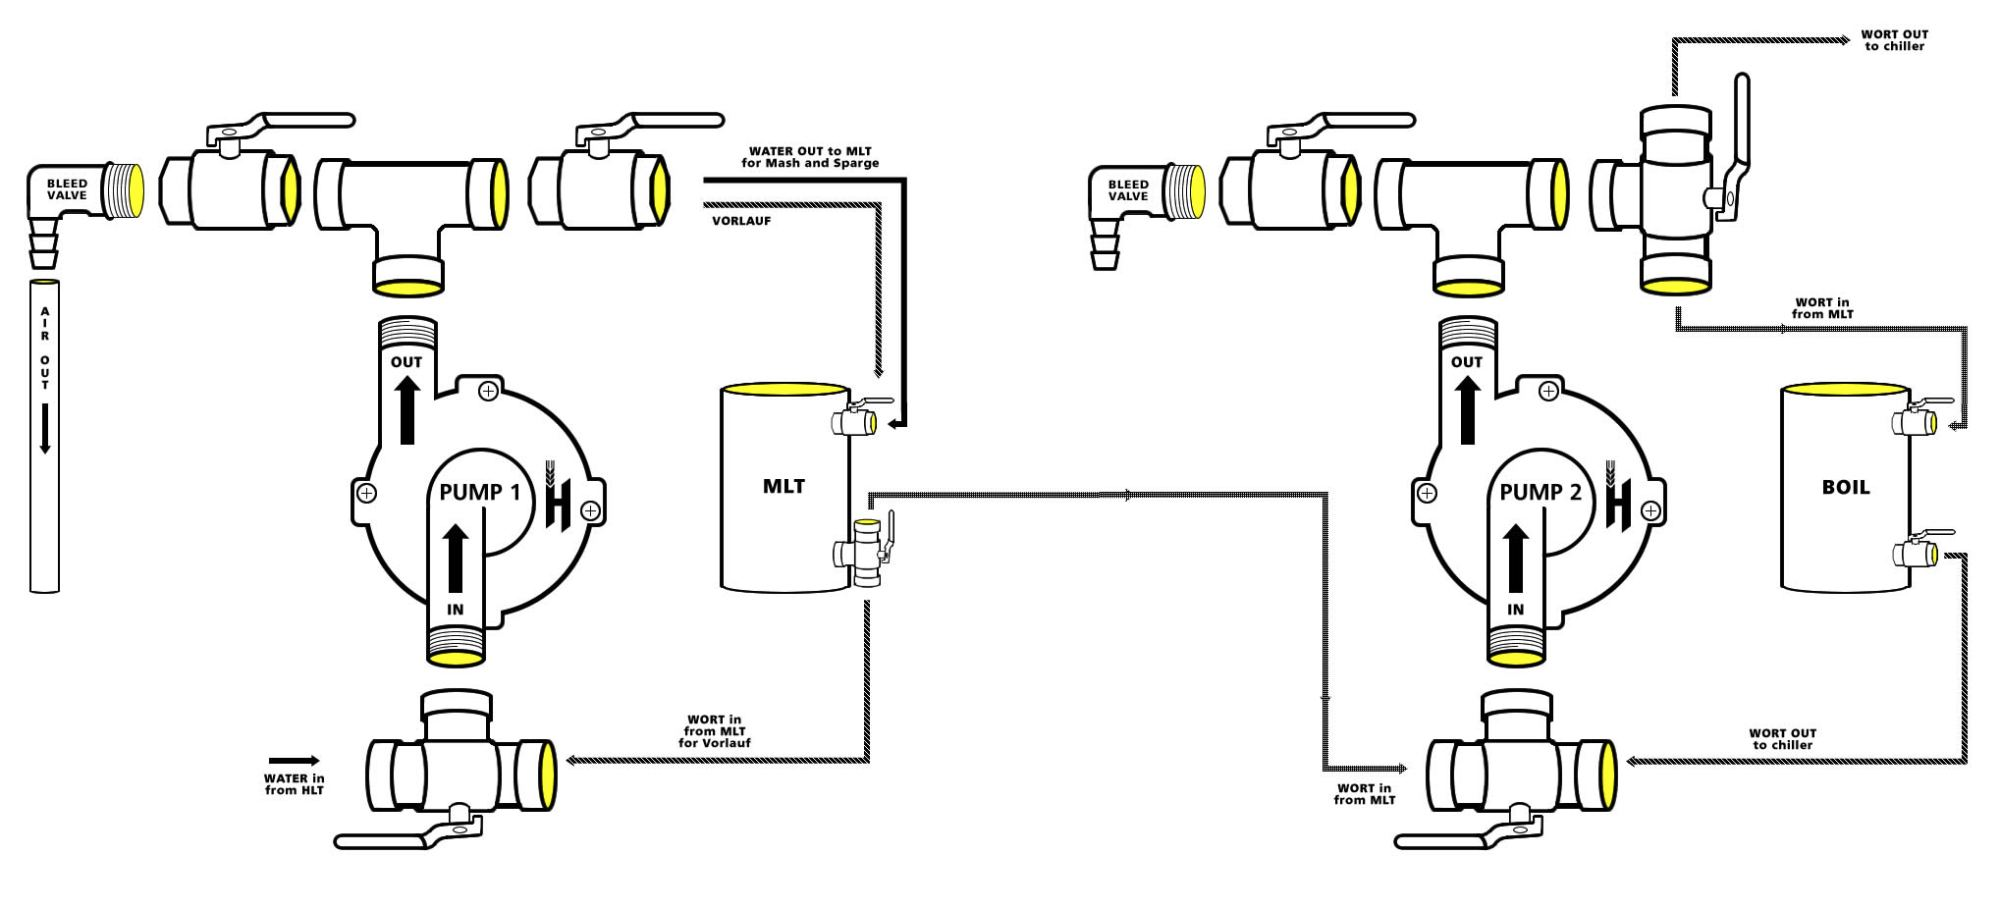 hight resolution of build a homebrew pump brew your ownadvanced pump setup